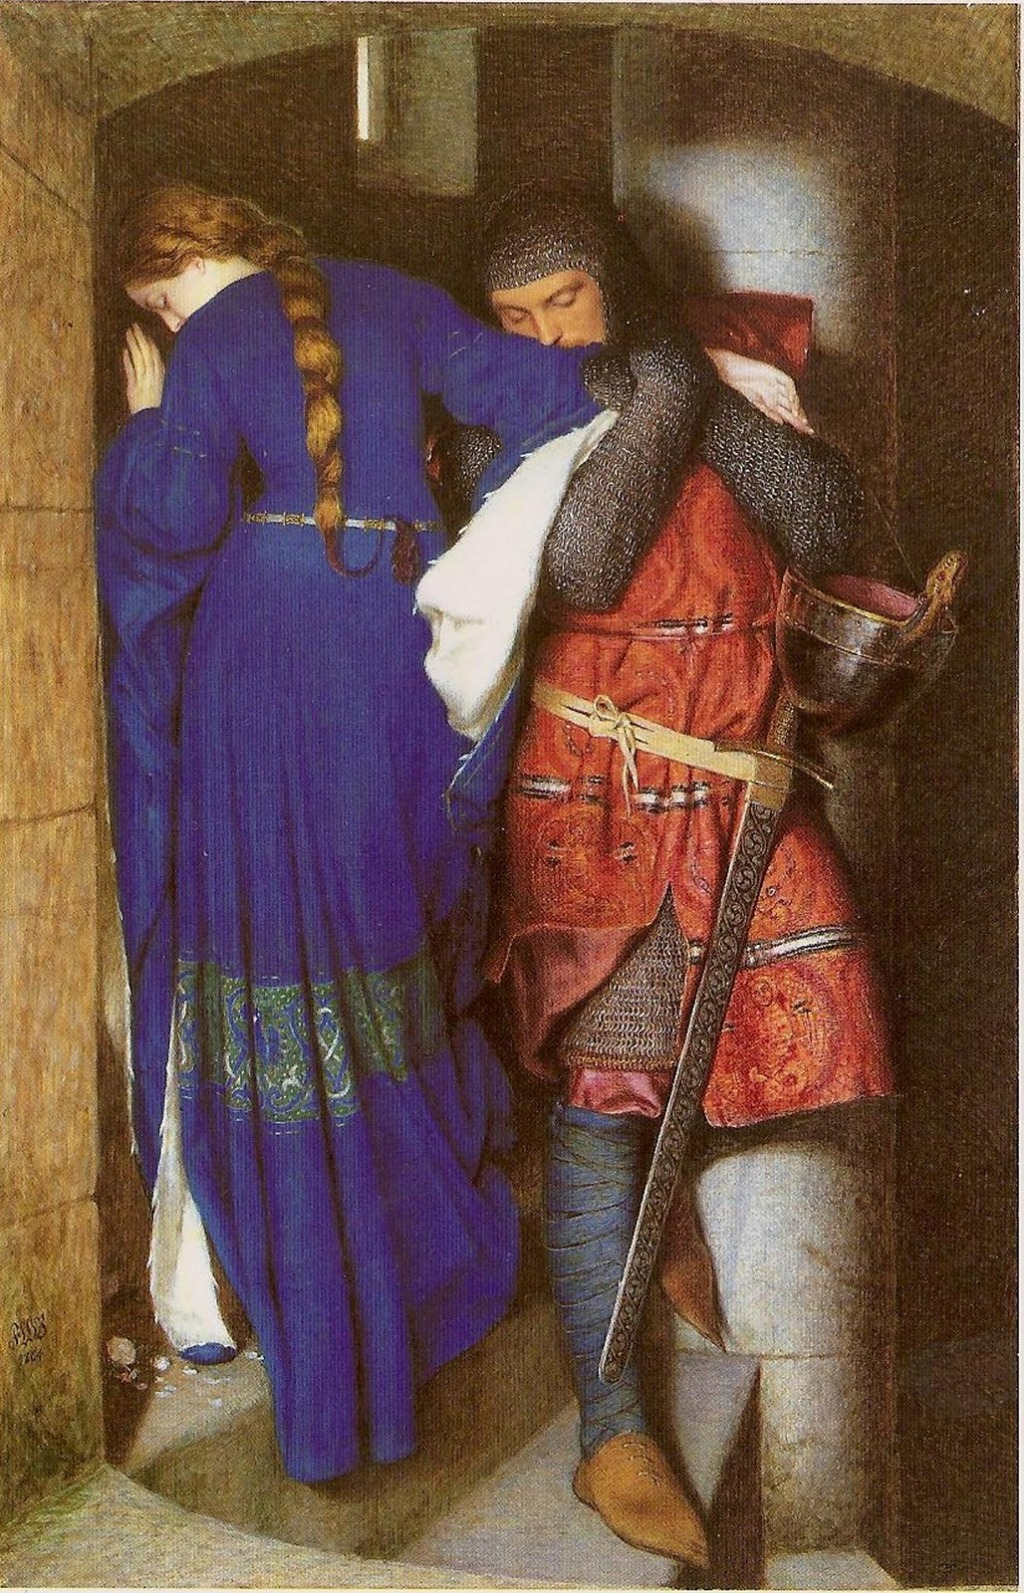 The Meeting on Turret Stairs, Frederick William Burton, Watercolour, 1864